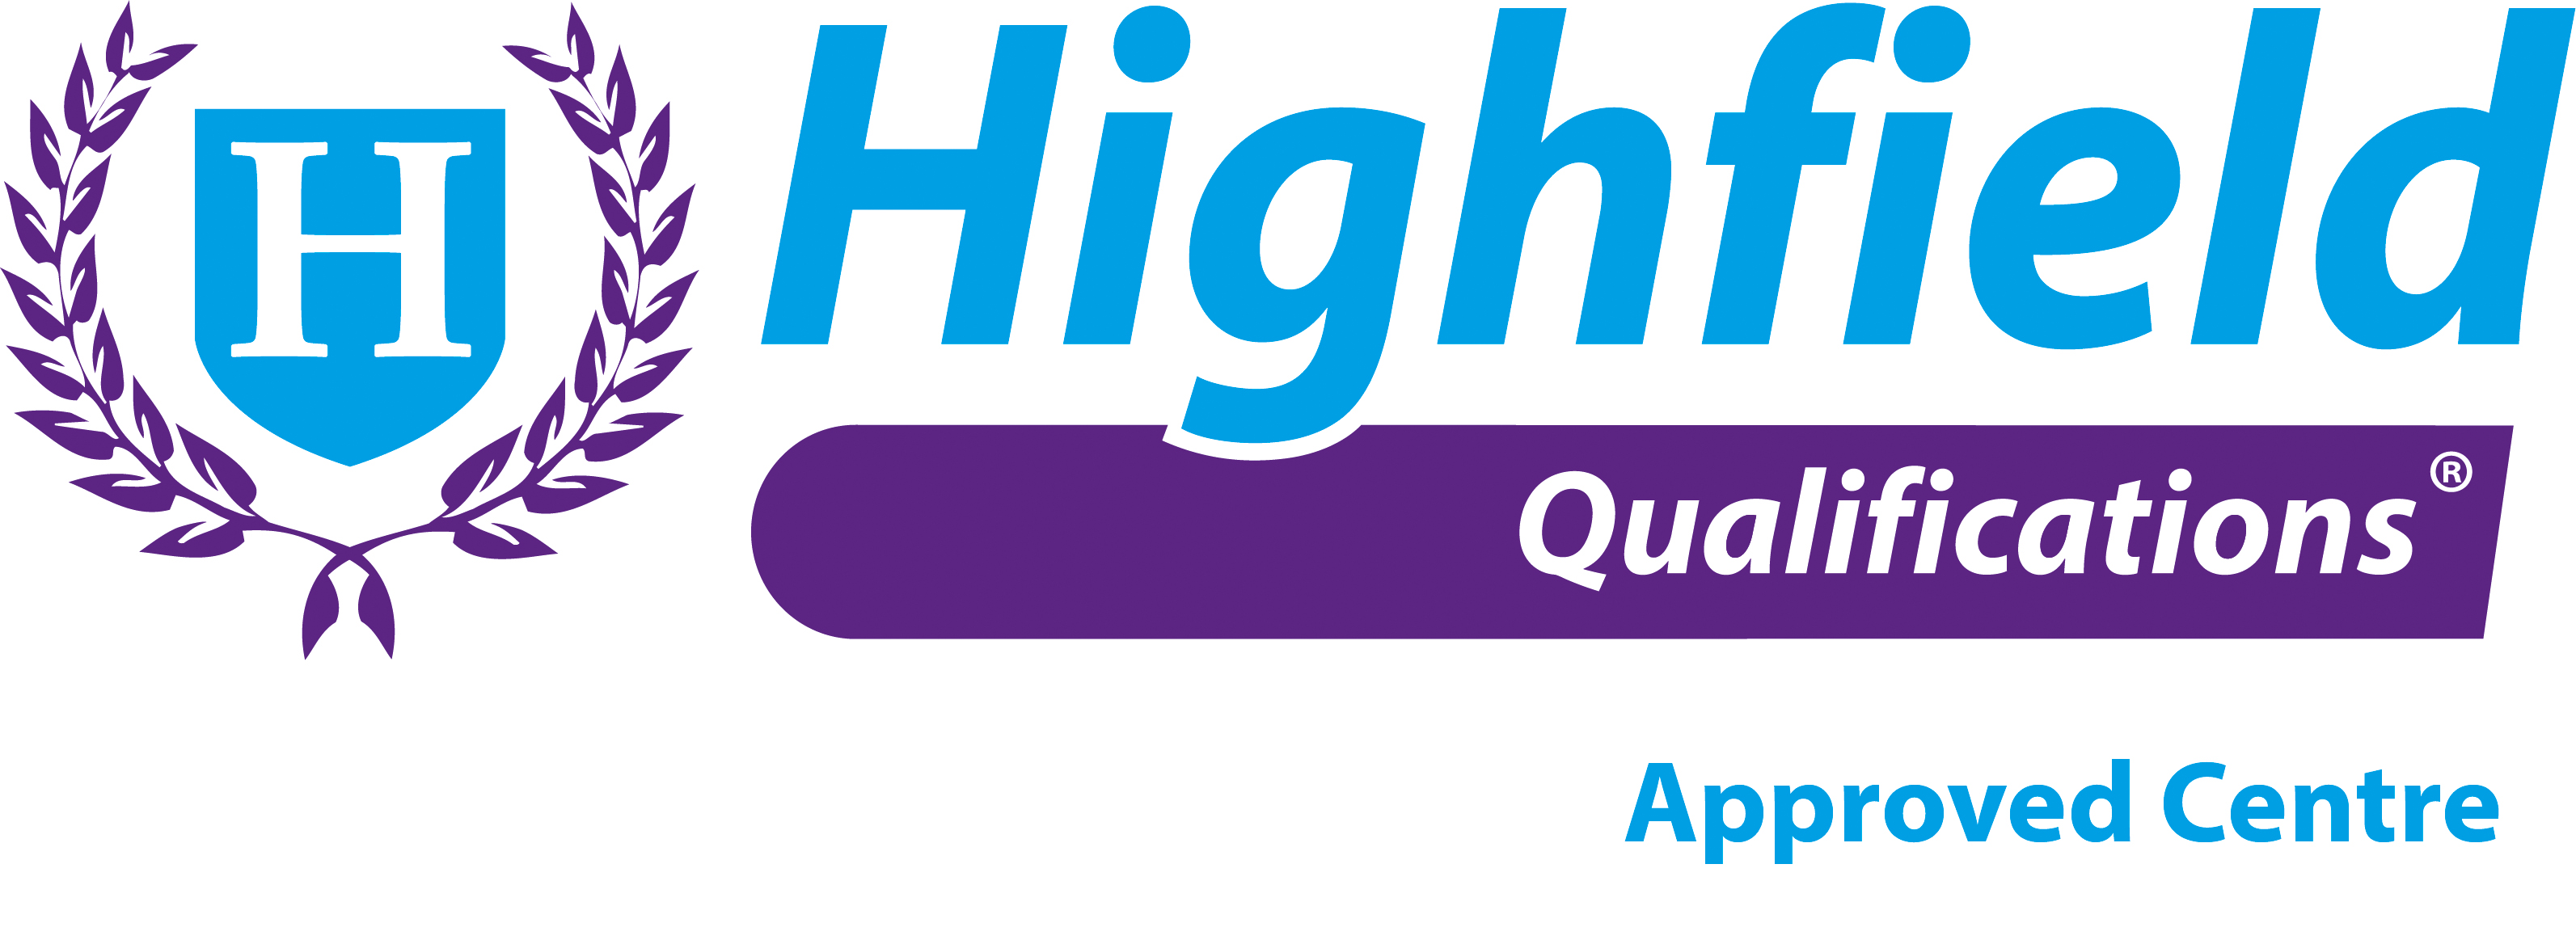 Highfield approved centre call today to discuss our list of qualifications.